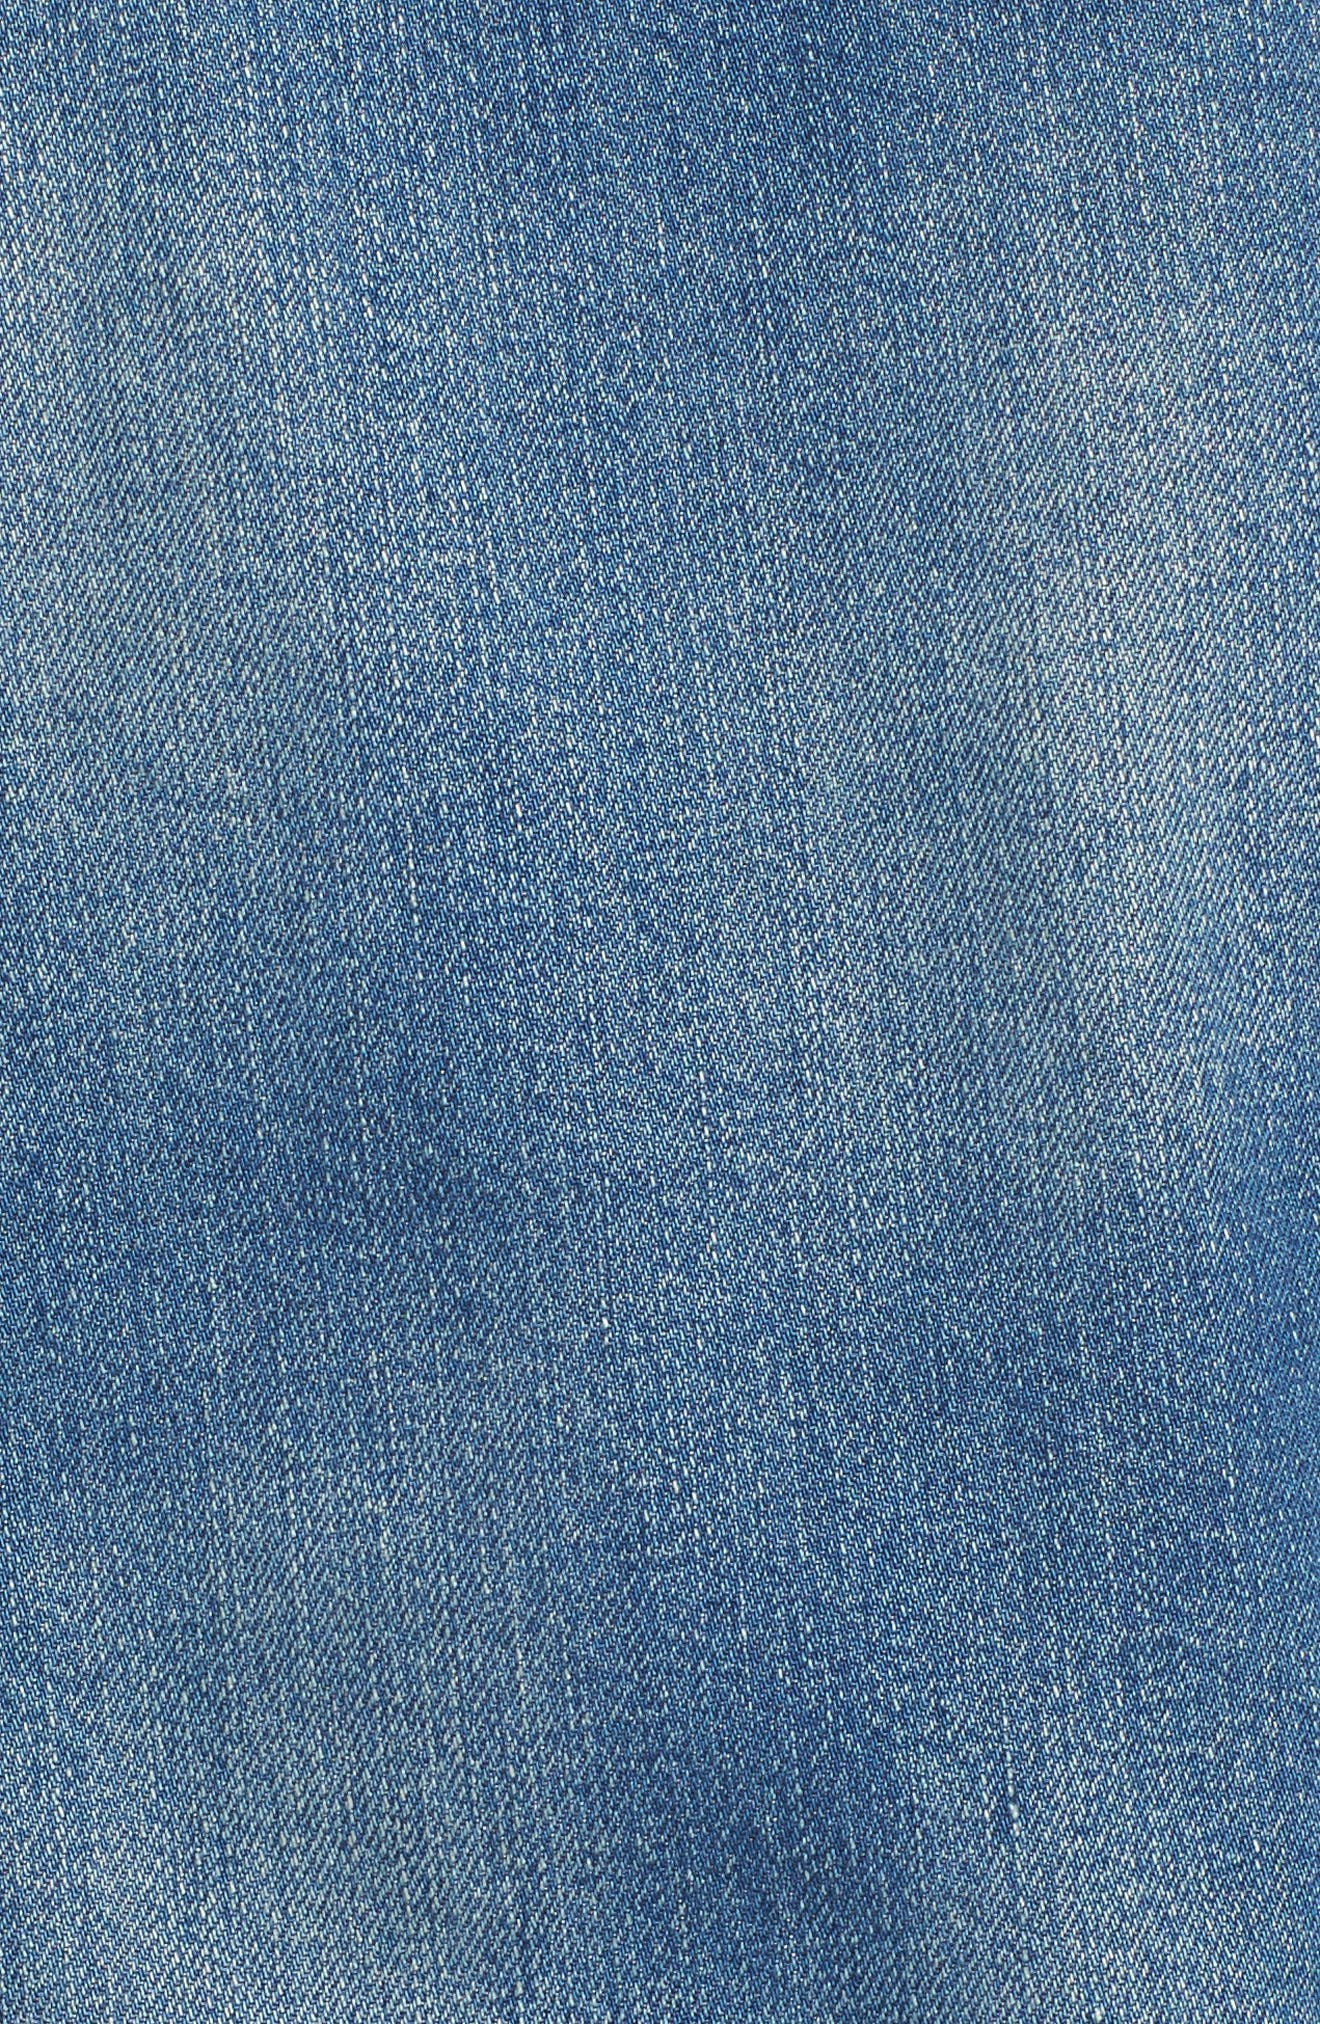 Denim Jacket,                             Alternate thumbnail 8, color,                             PINTER WASH